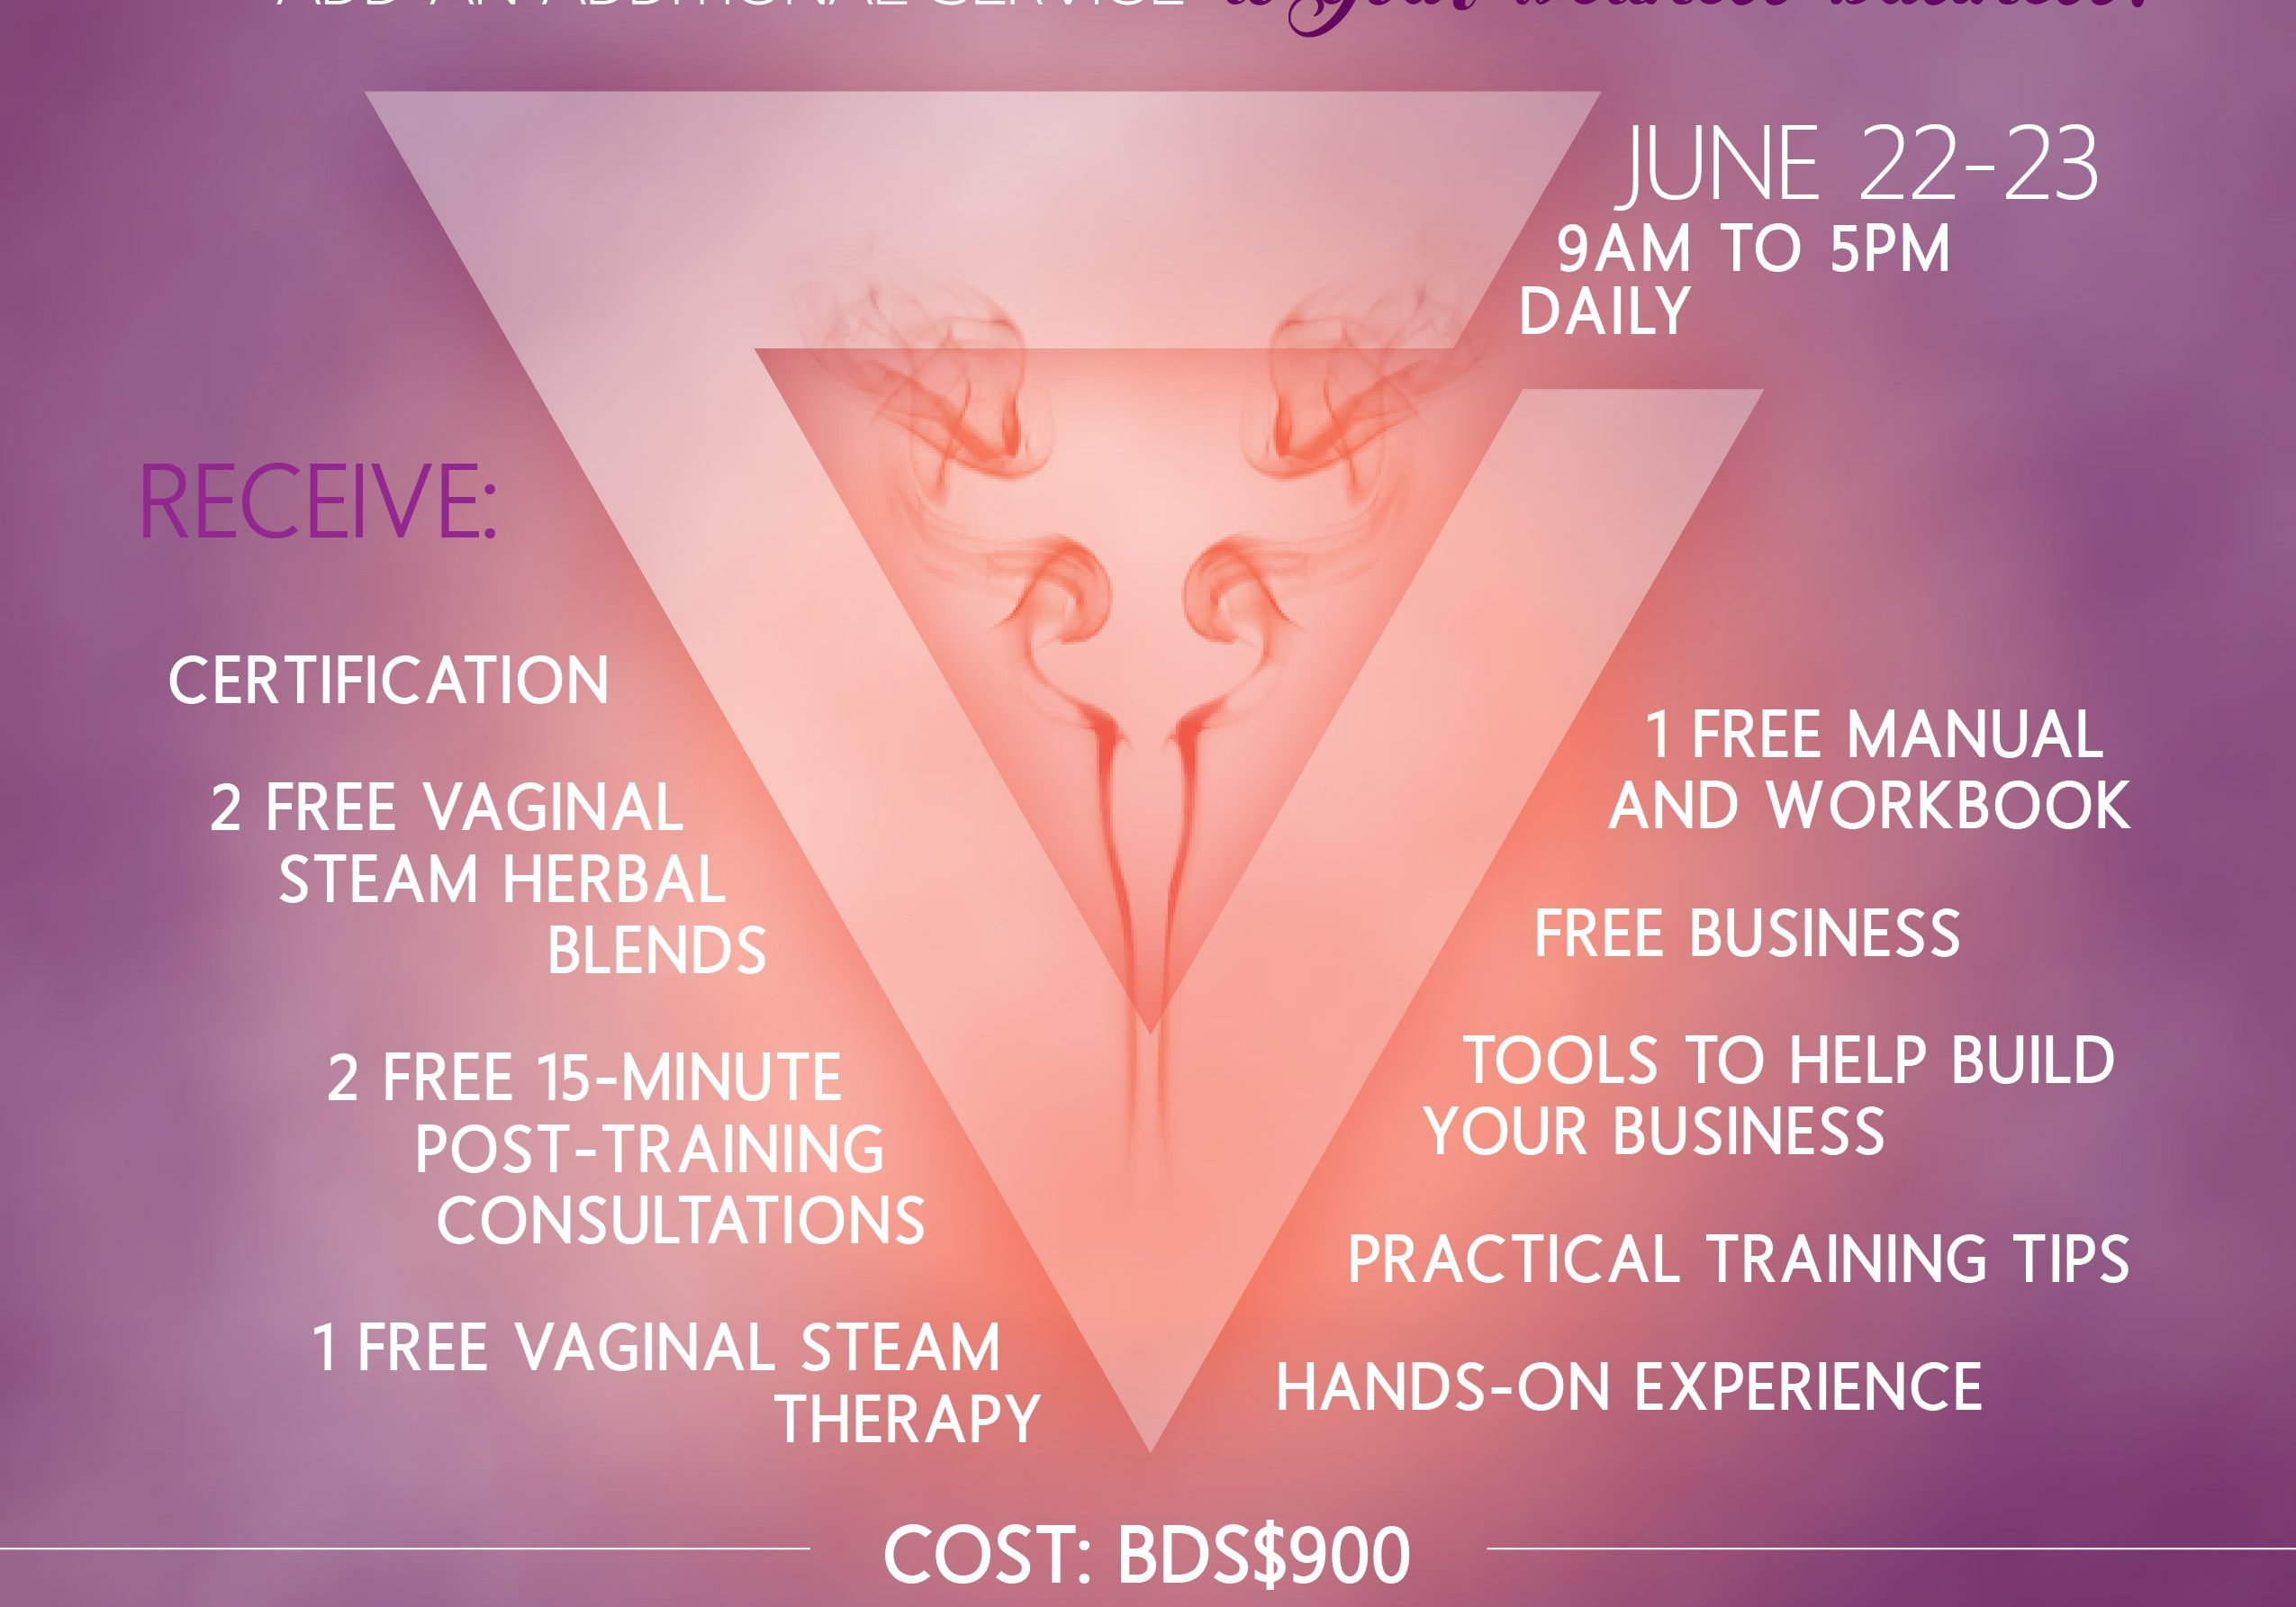 WoB_VSteamTherapistCertWorkshop_Flyer_JUNE22_23-01